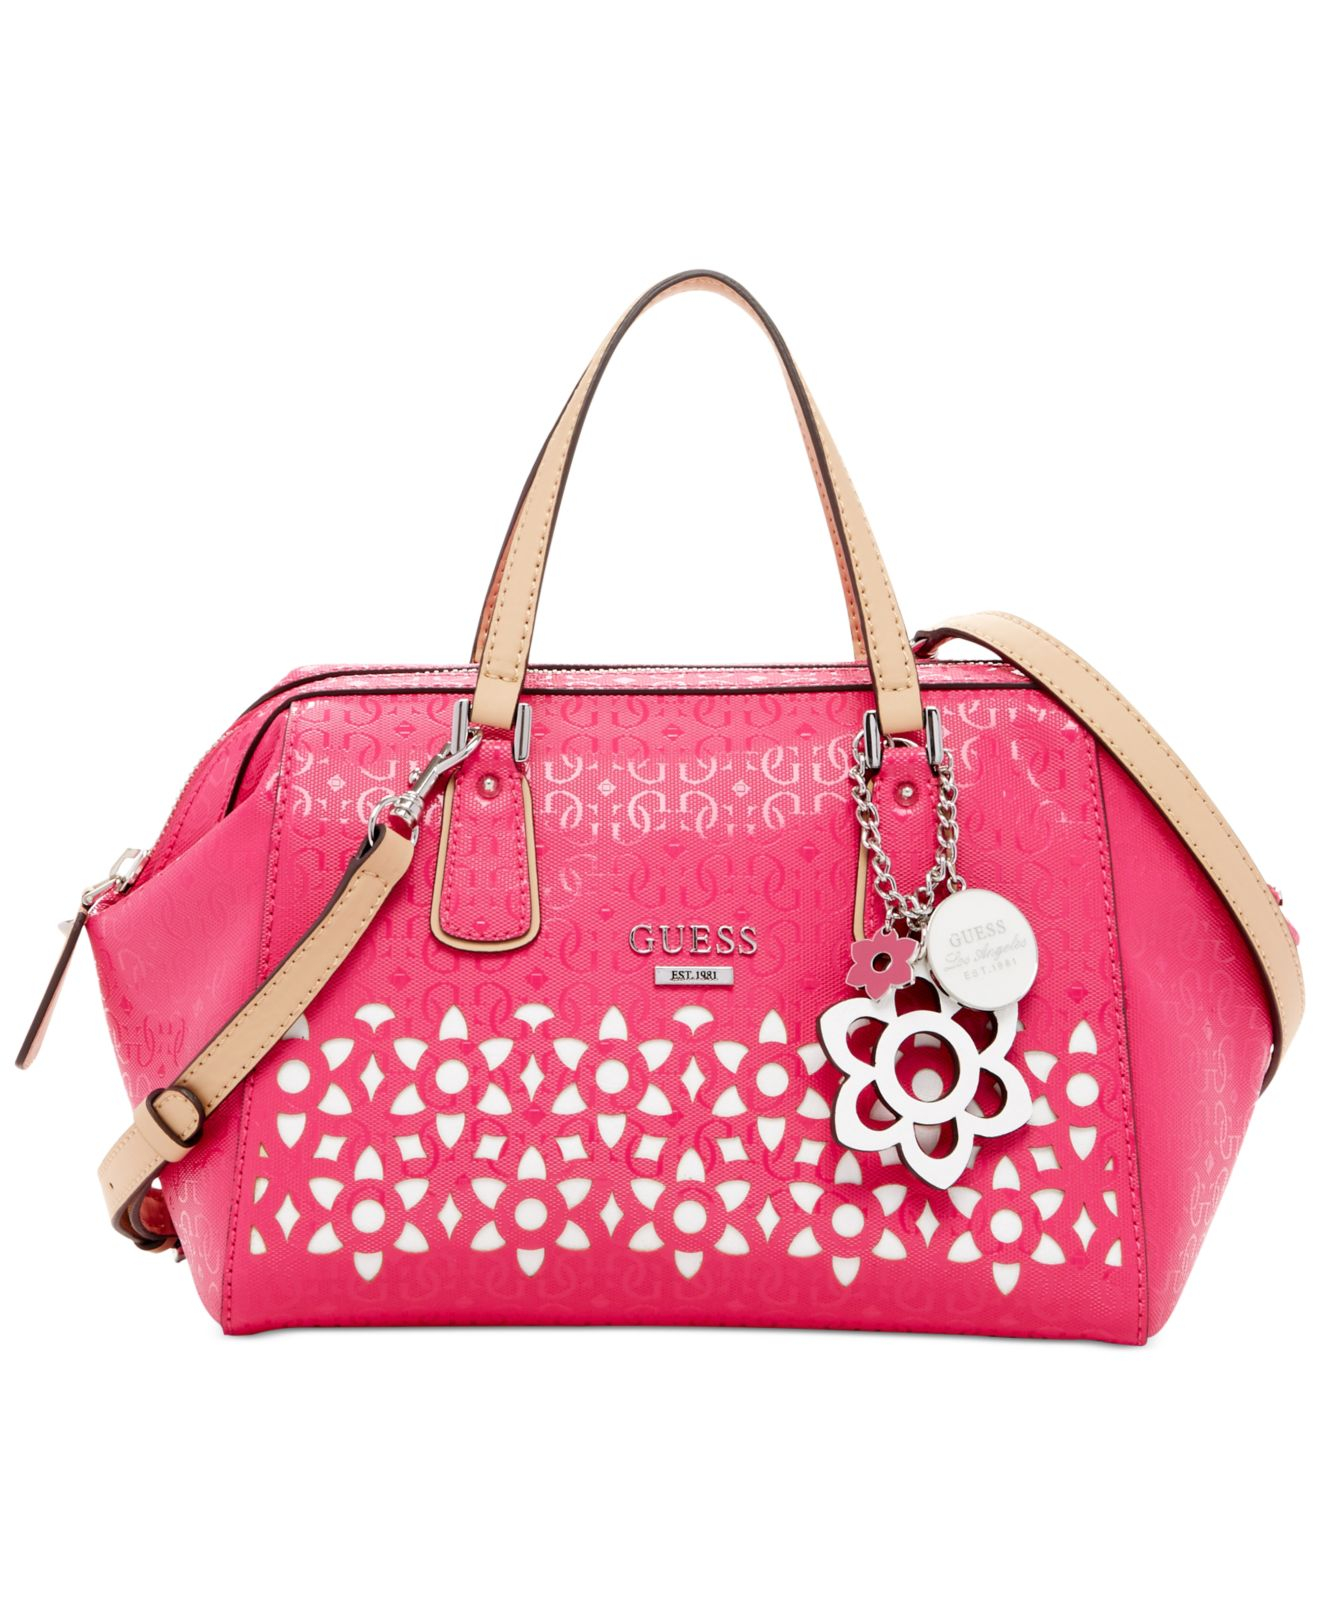 Guess Bianco Nero Frame Satchel in Pink | Lyst